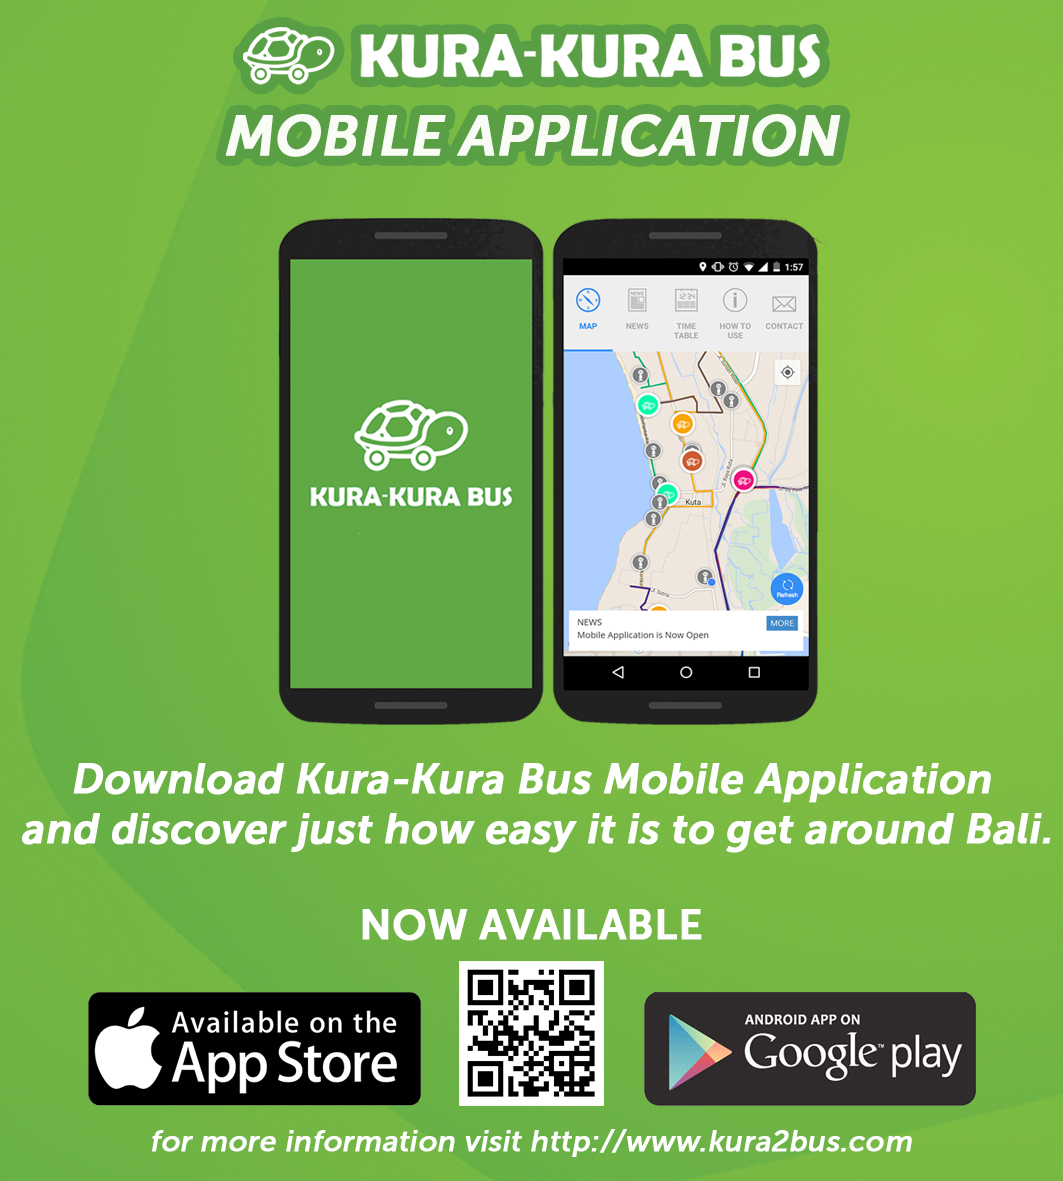 Kura-Kura Bus Mobile Application | Kura-Kura Bus